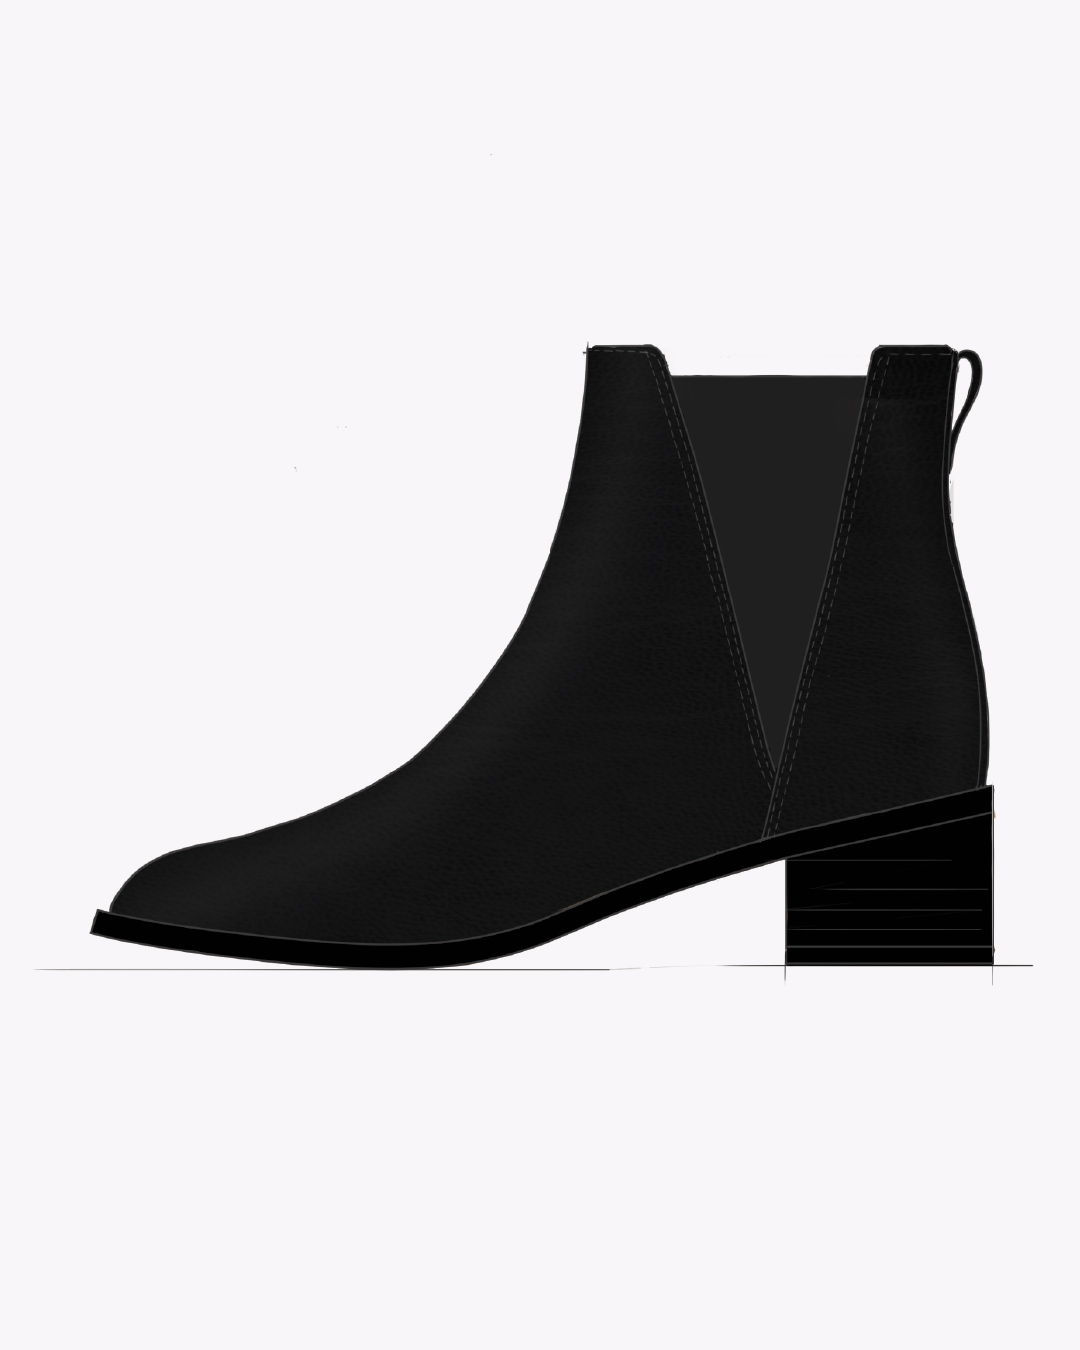 Nisolo Women's Chelsea Boot